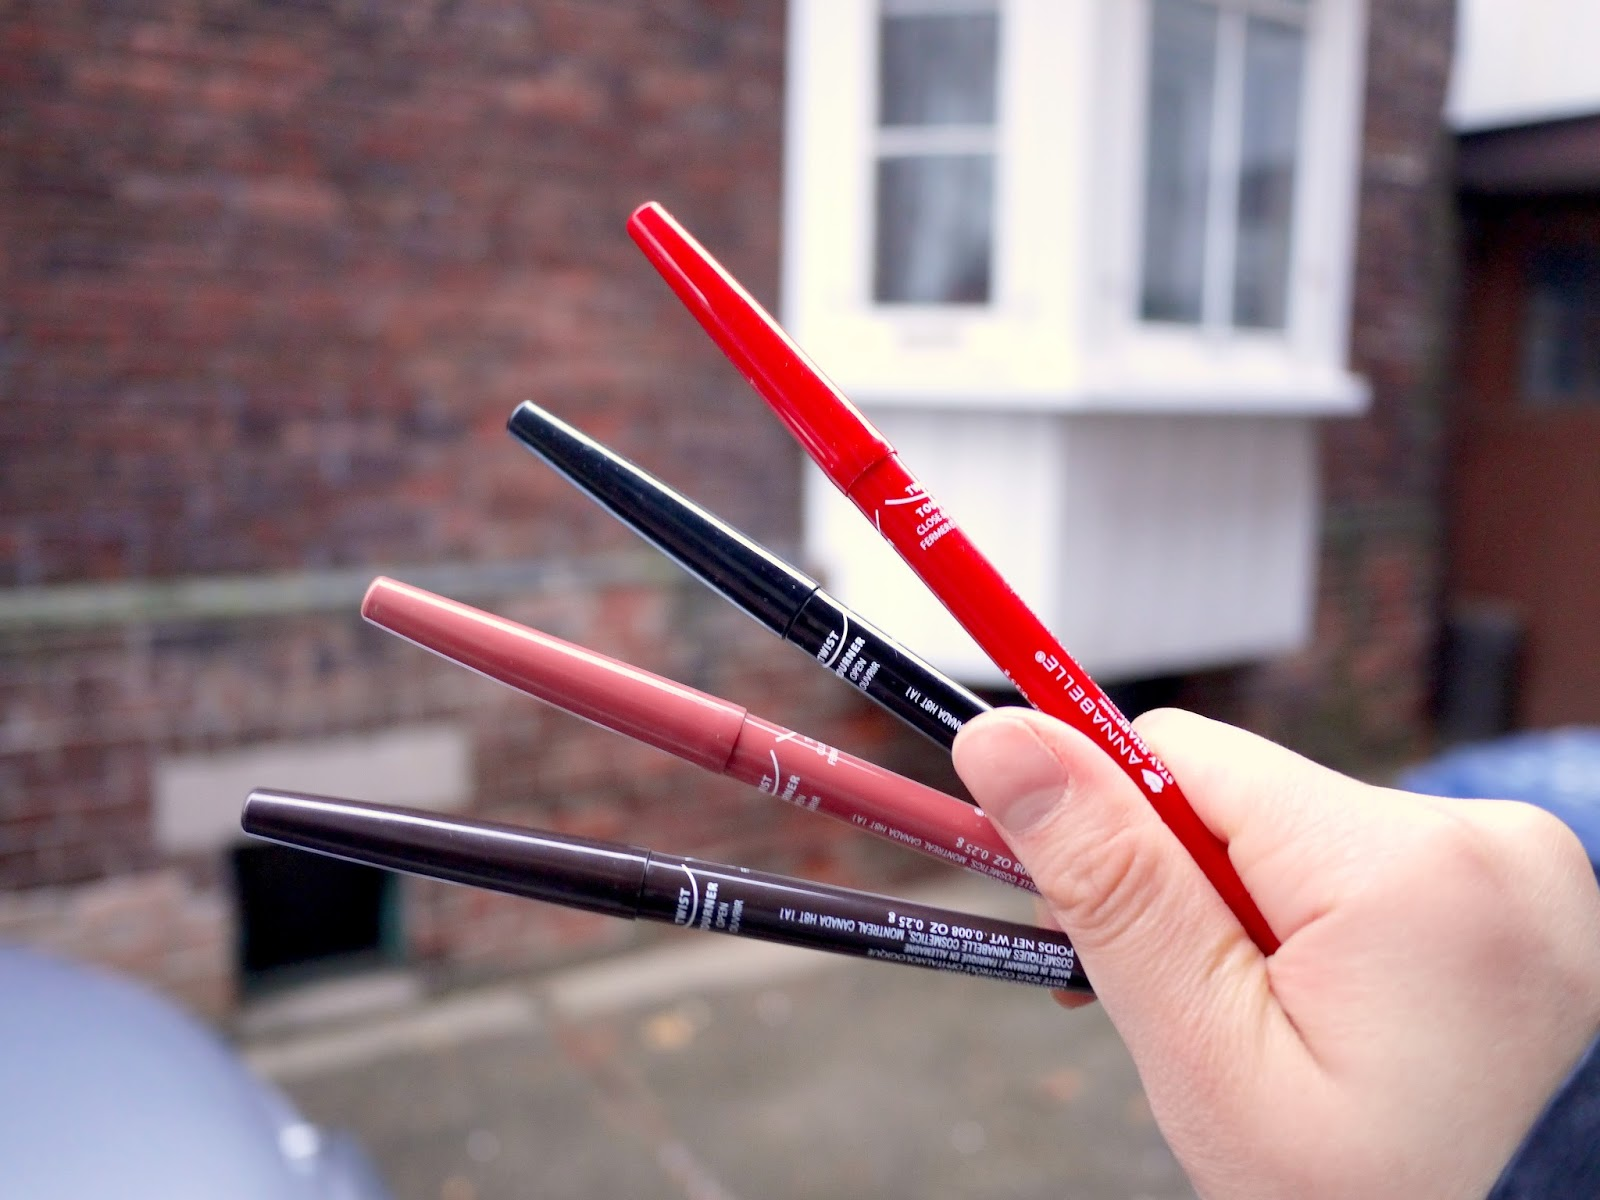 Annabelle Stay Sharp Waterproof liners java go black cappucino glam red review swatch